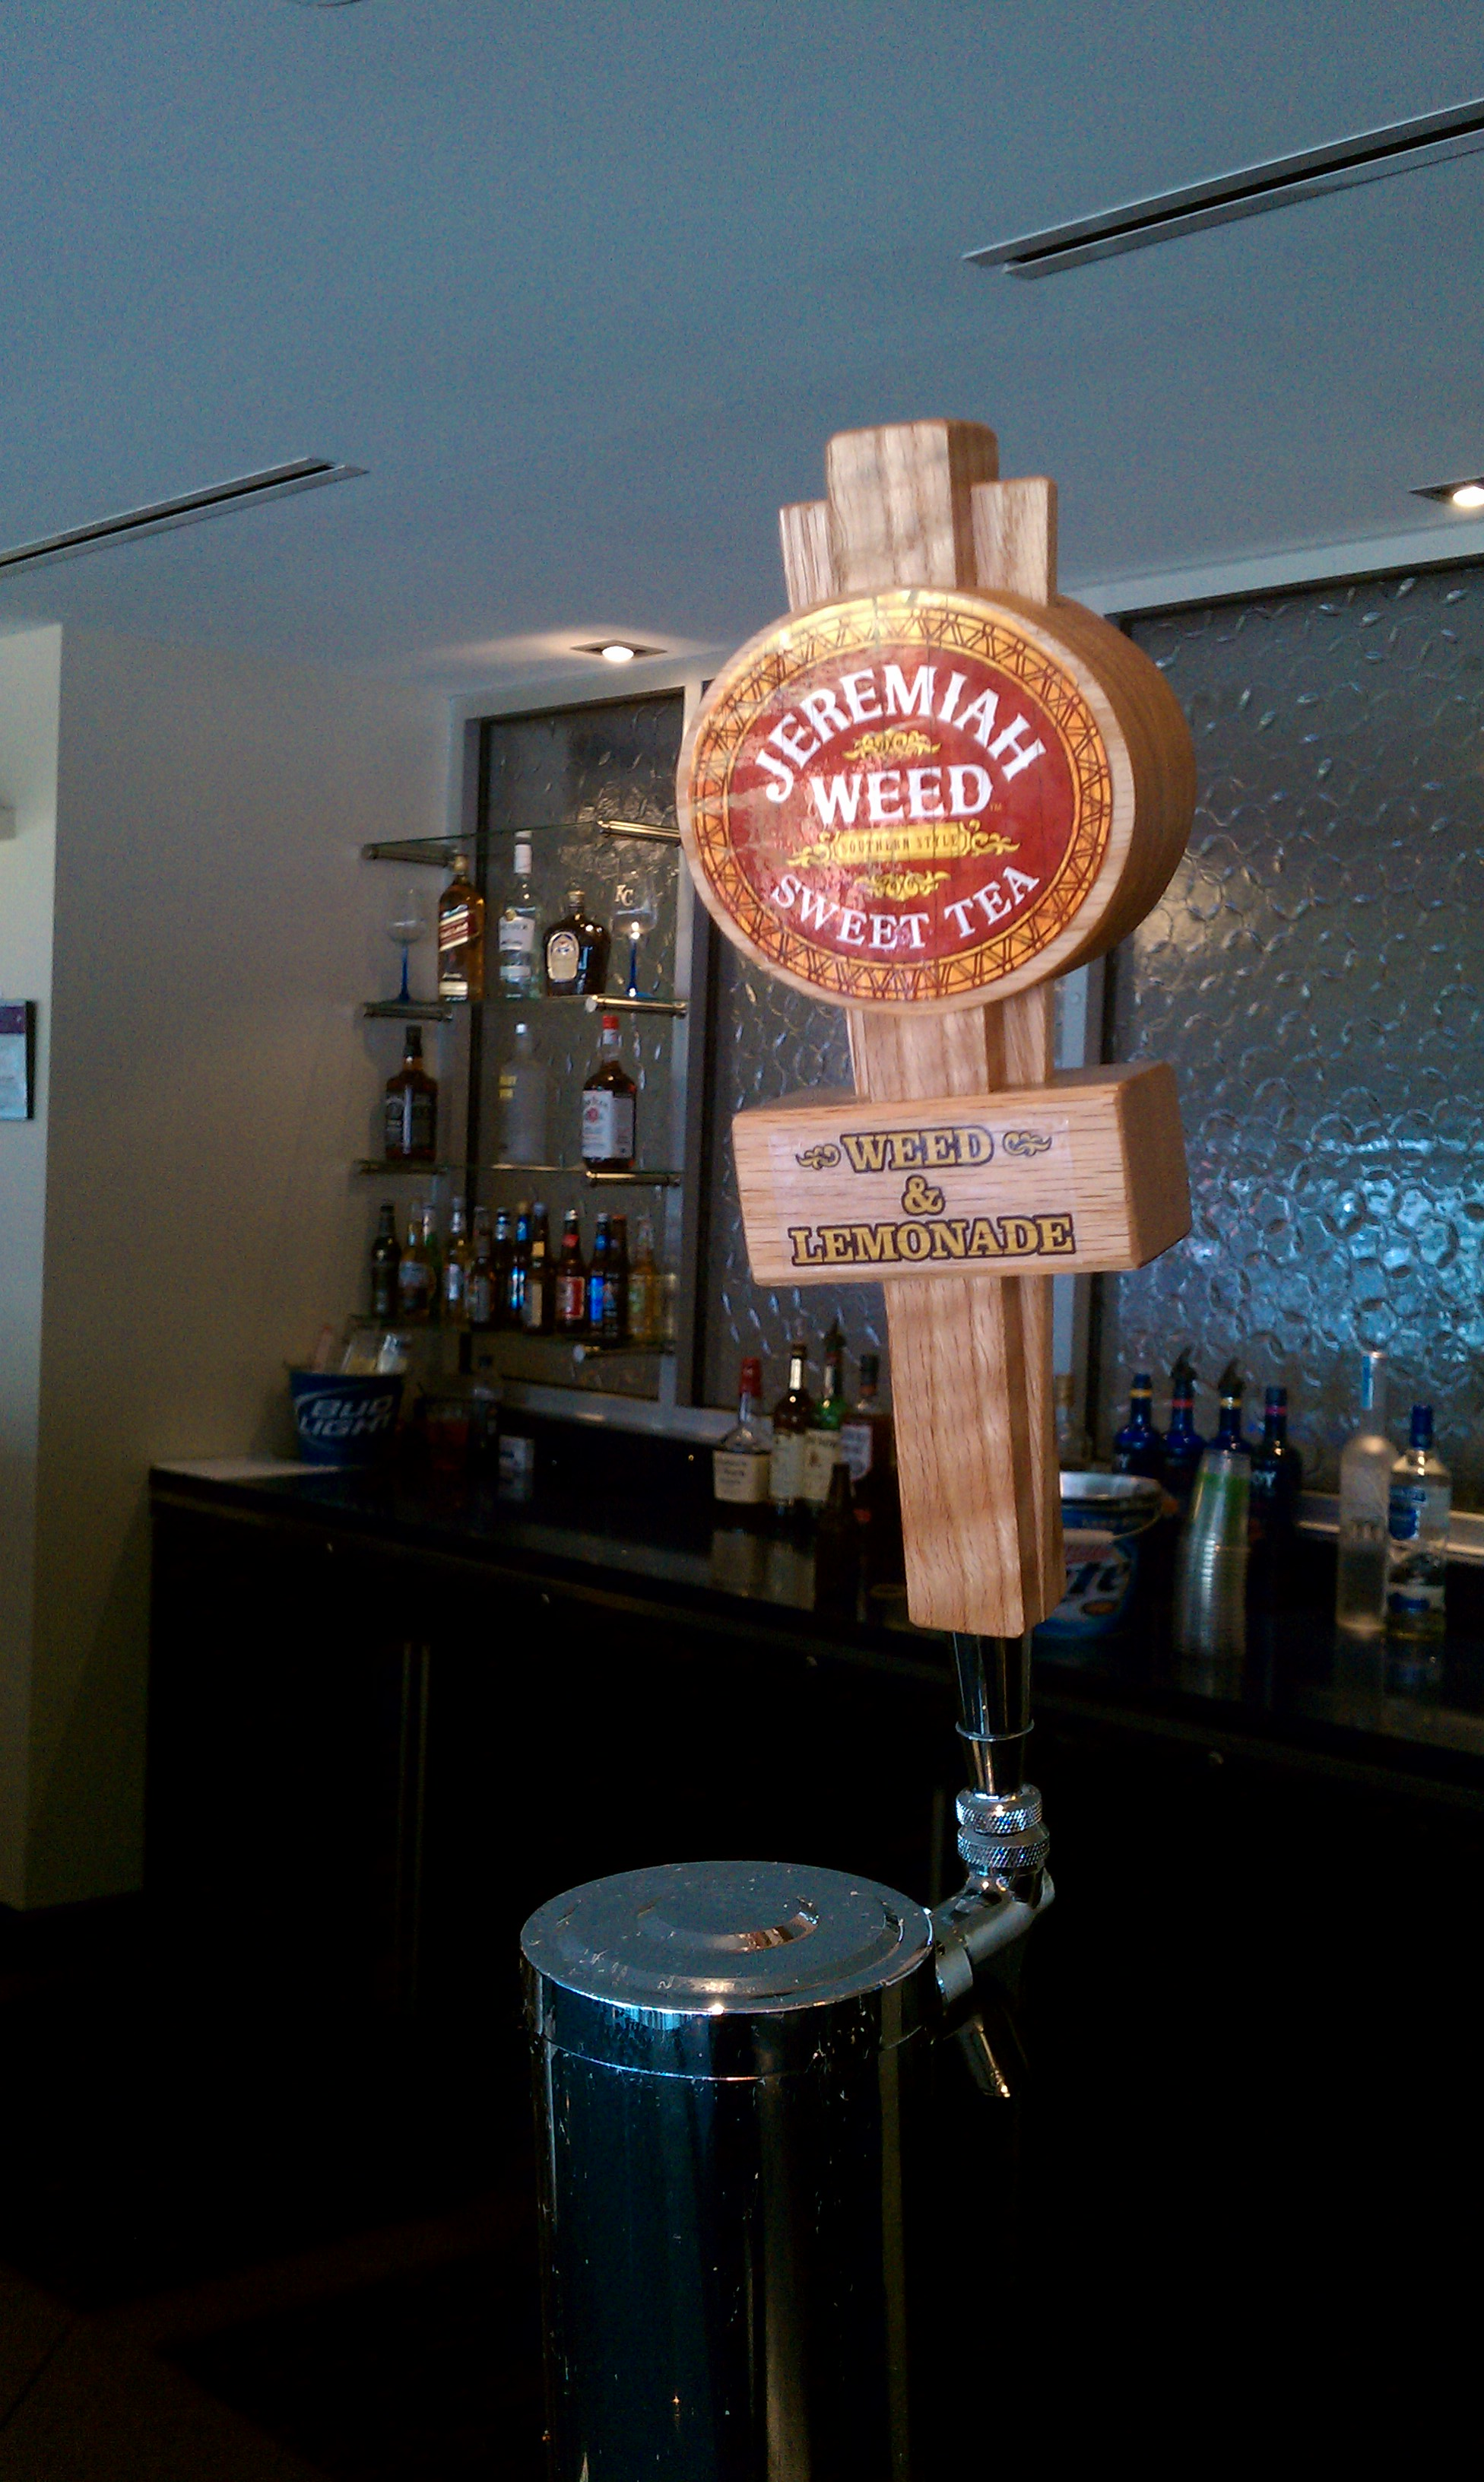 Sweet tea vodka and lemonade - on tap!